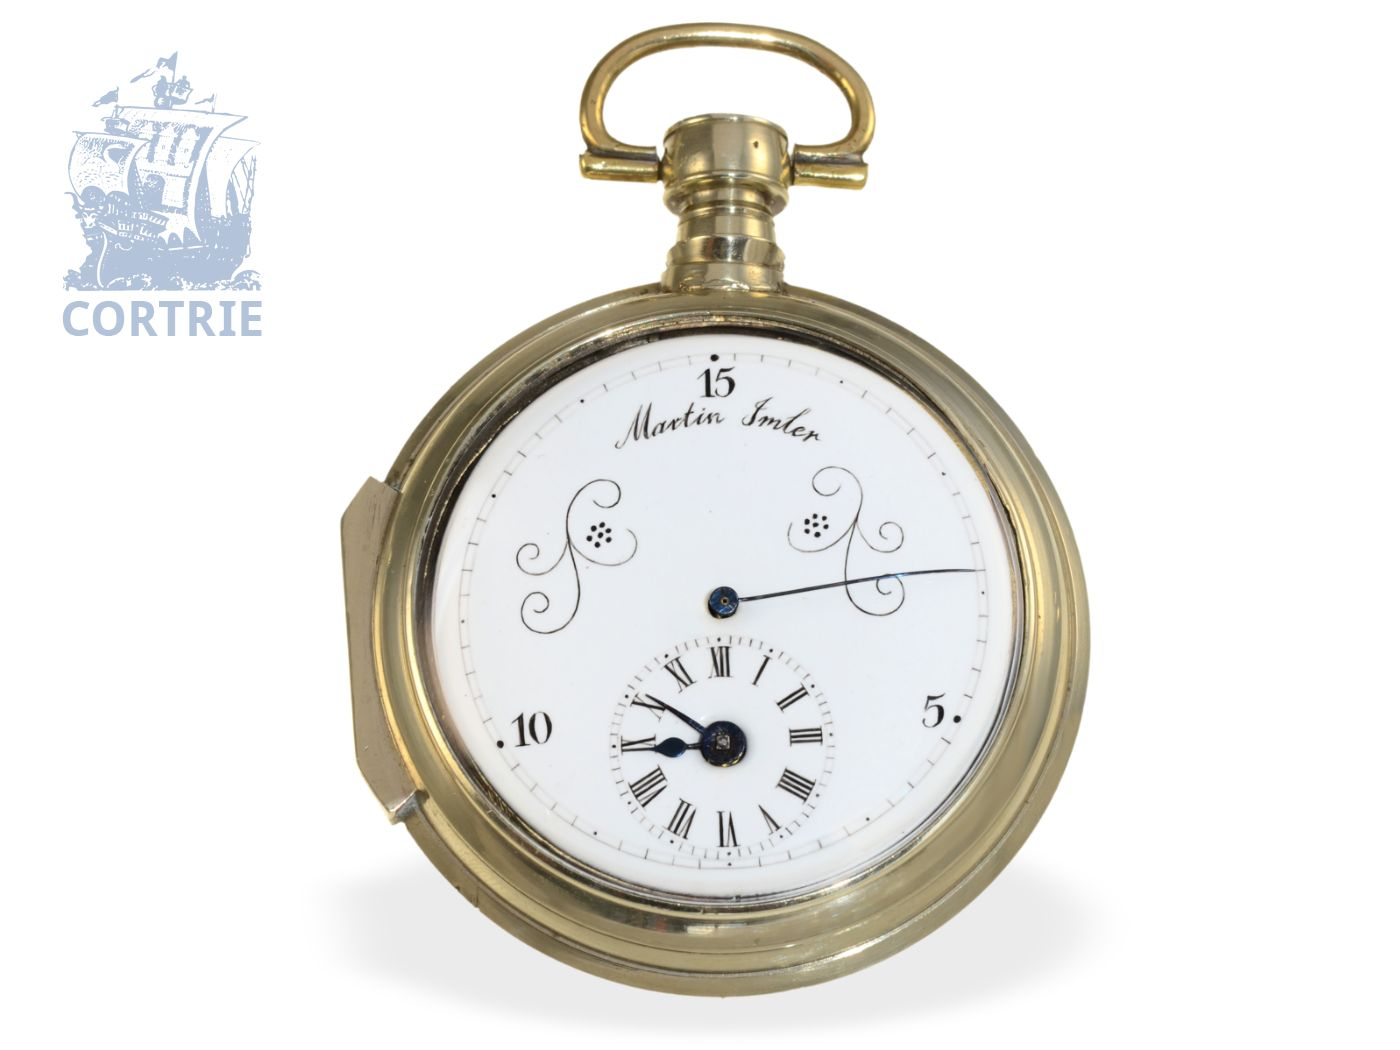 Pocket watch: extremely rare automatic German pocket watch with 15 seconds dial, signed Martin Imler, probably colleague of Joseph Maler Staufen-